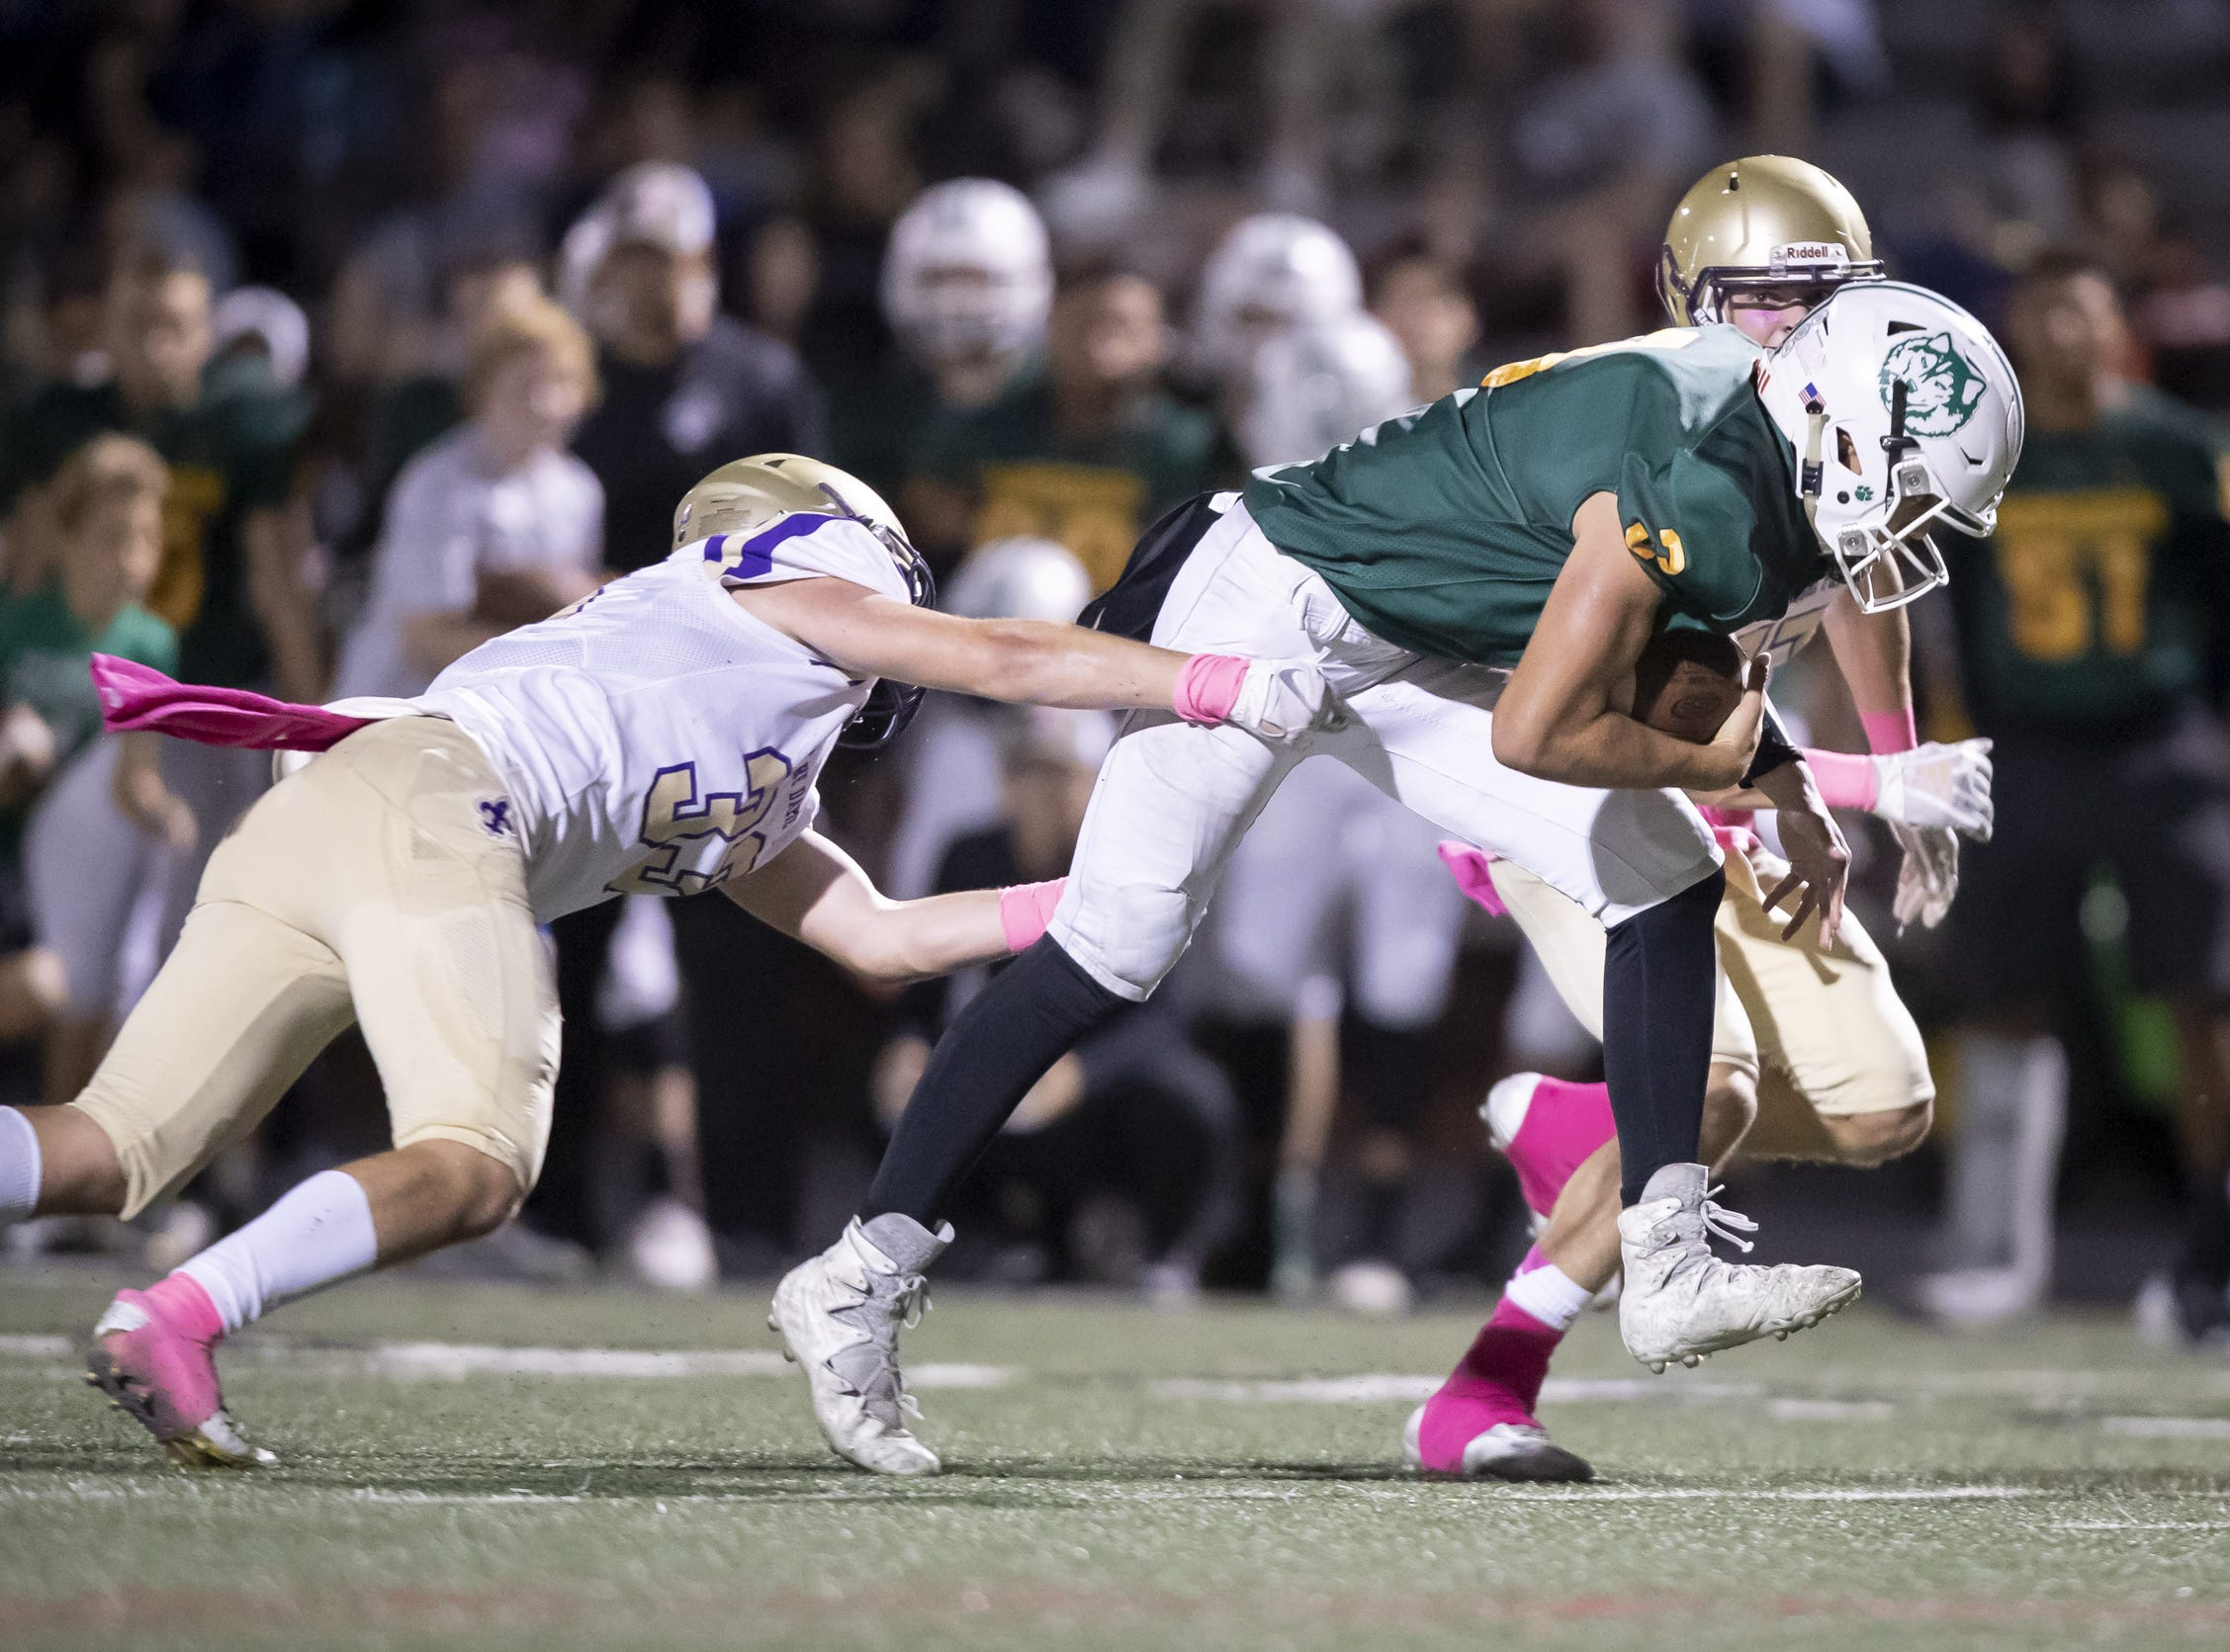 Senior quarterback Isaac Enriquez (3) of the Horizon Huskies runs the ball against junior cornerback Trey Cartledge (33) of the Notre Dame Prep Saints at Horizon High School on Friday, October 5, 2018 in Scottsdale, Arizona. #azhsfb